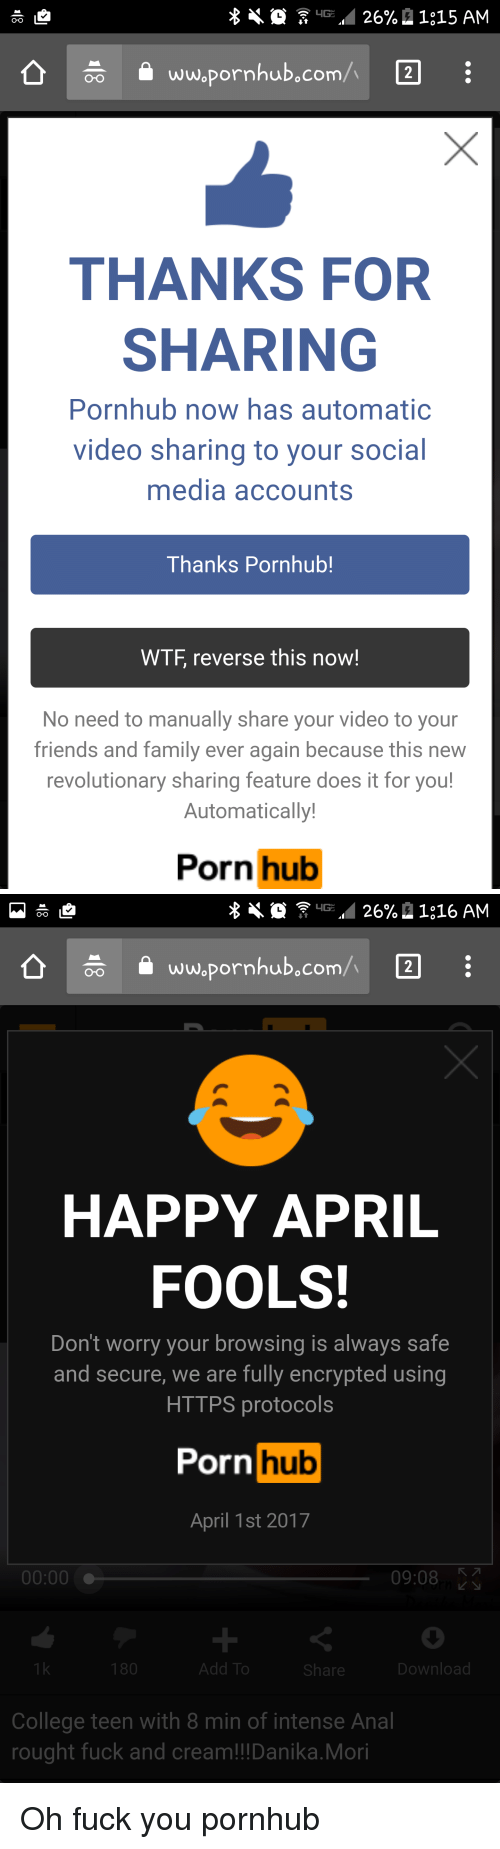 Is it safe to download videos from pornhub